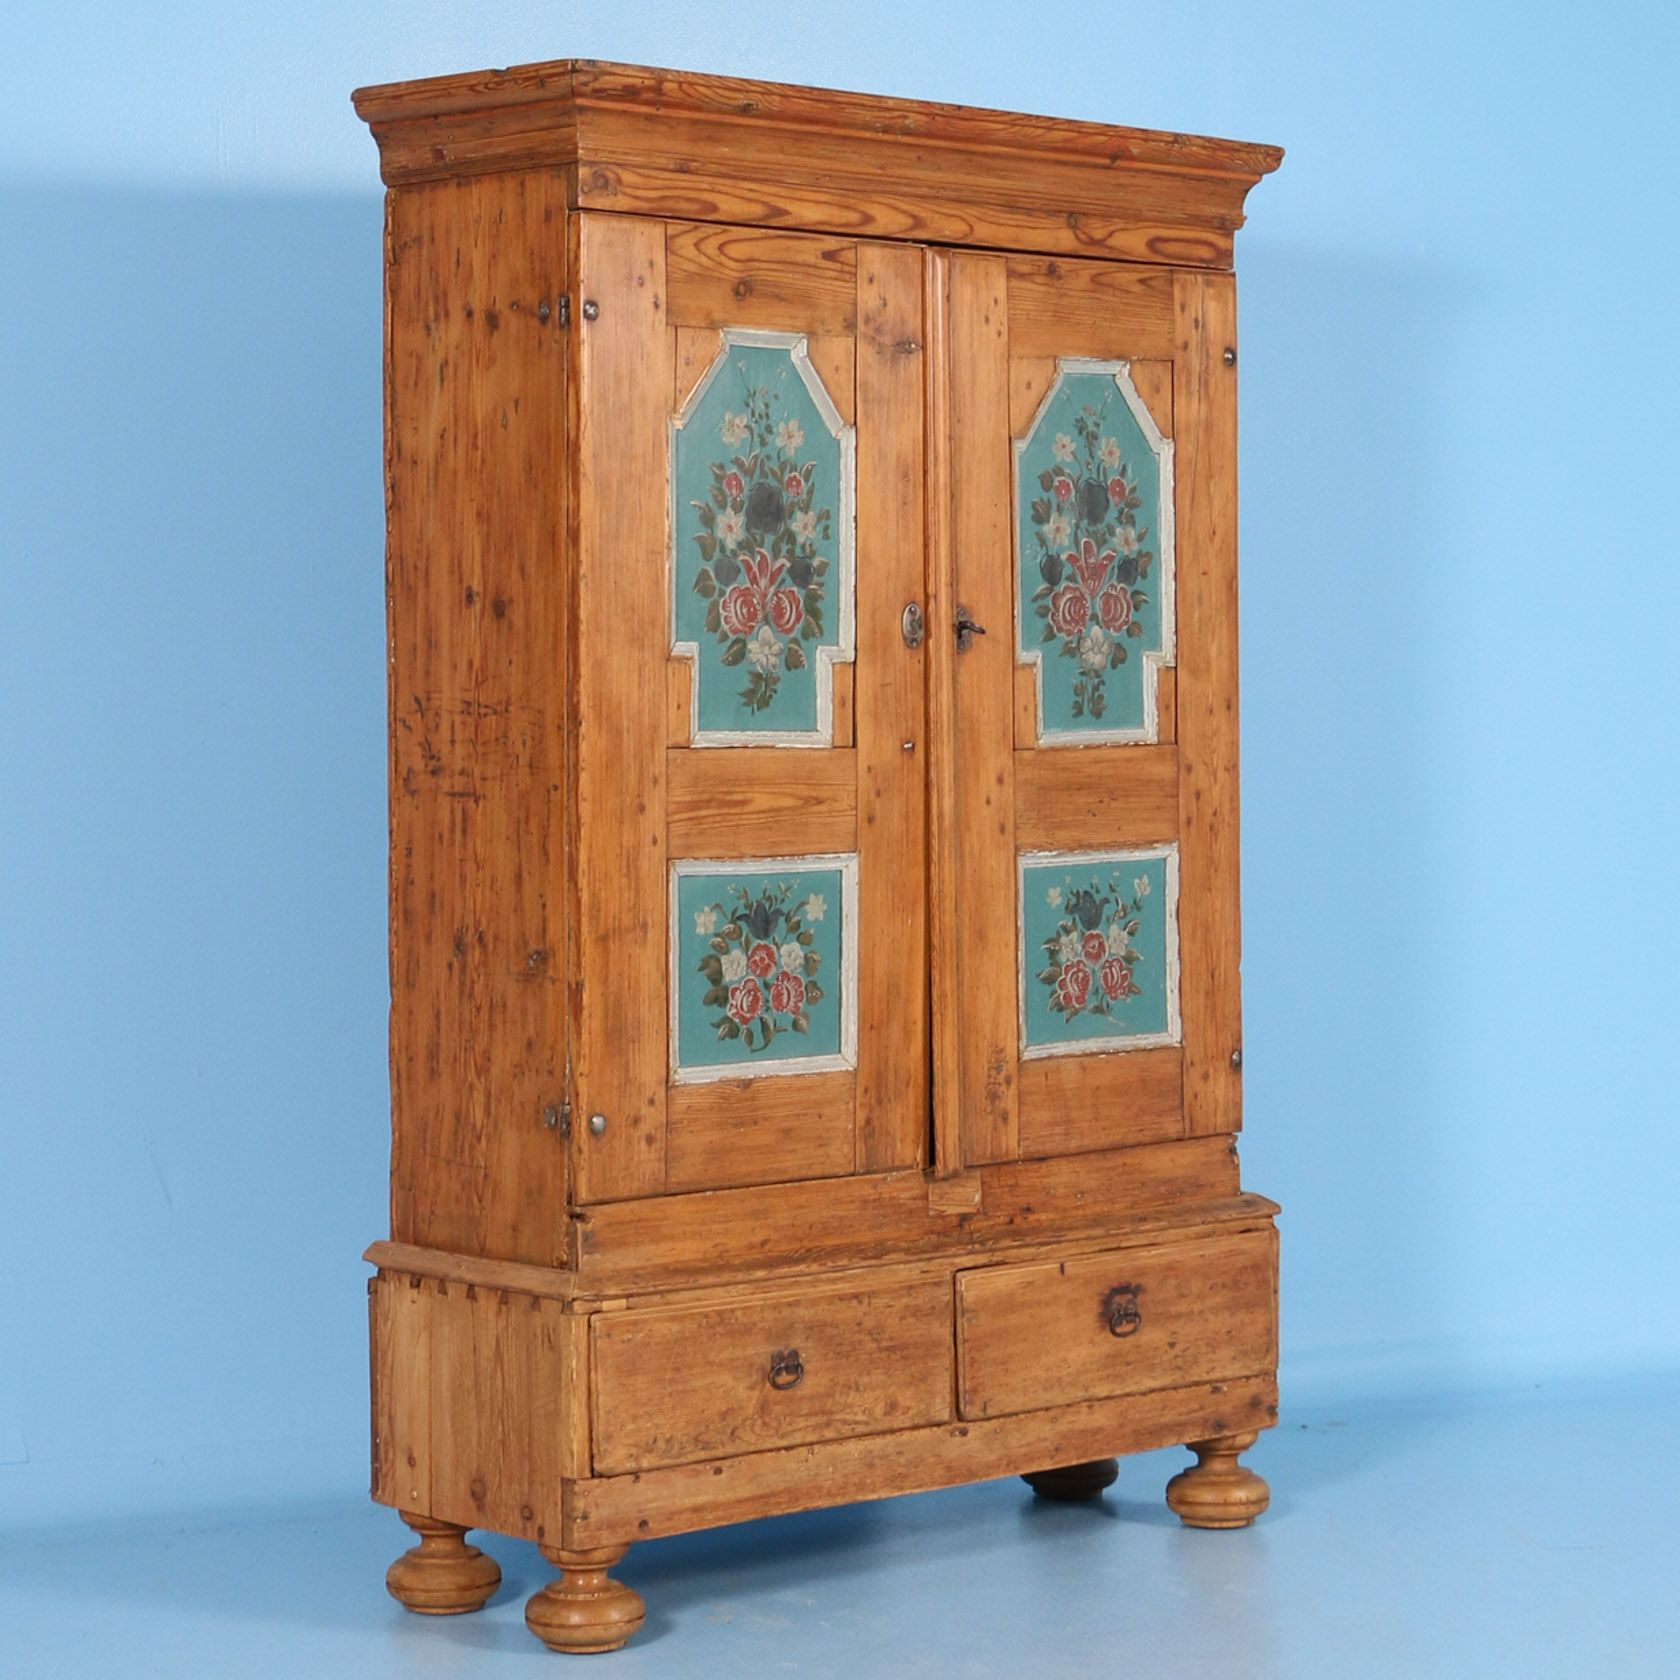 Antique Pine Armoire With Original Painted Panels Circa 1800 1840 Painting Furniture Diy Antiques Scandinavian Folk Art